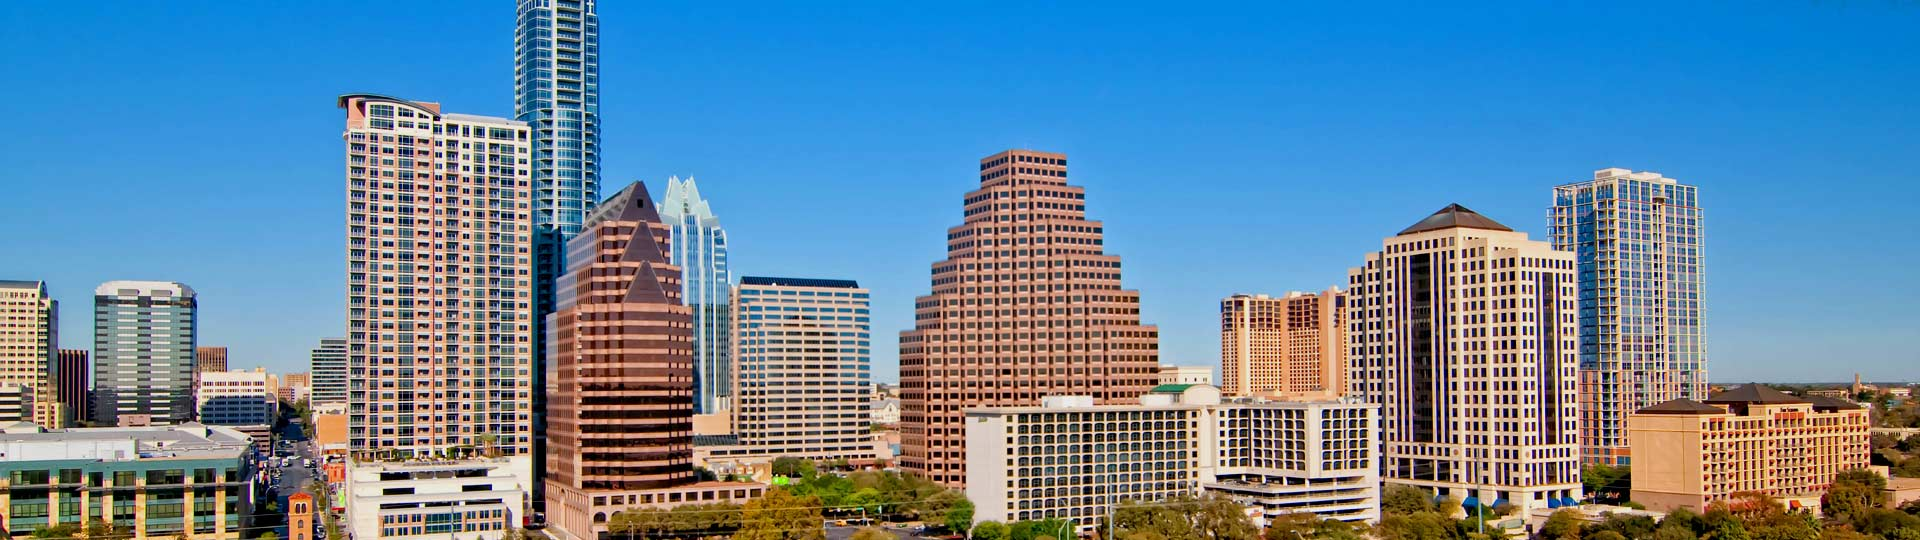 NAS adds Austin Texas location to further enhance commercial property management services